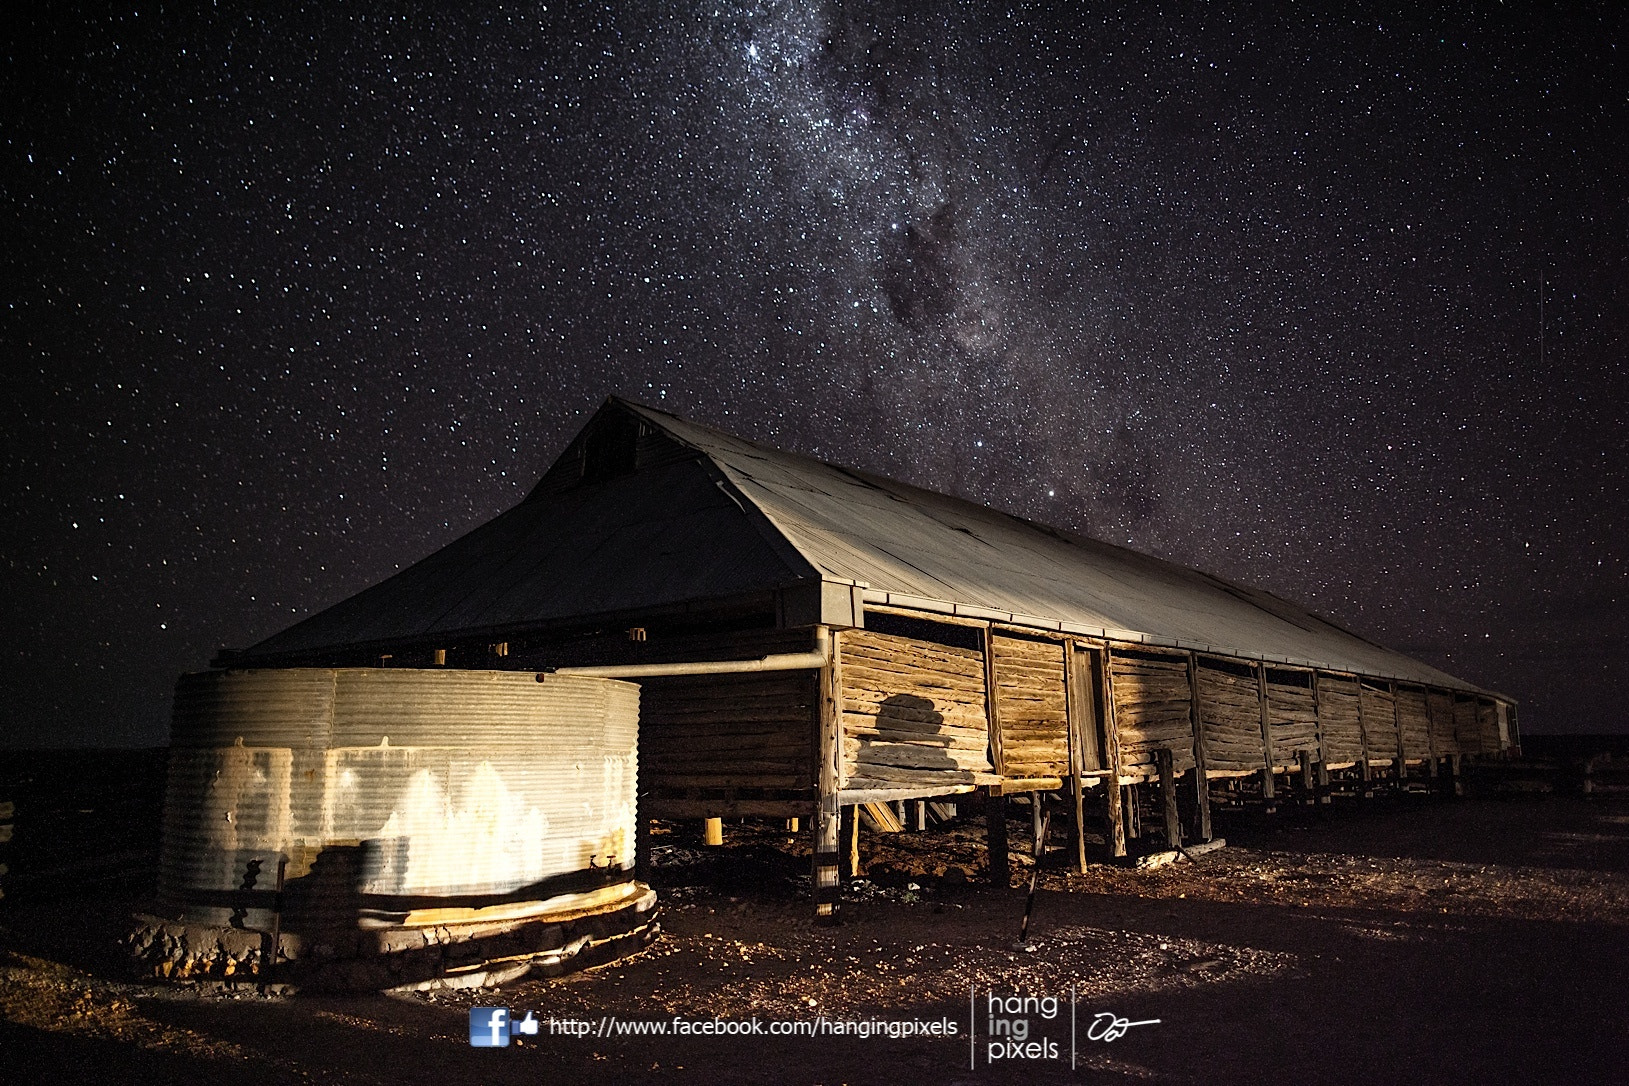 Photograph Day 4 - Mungo Woolshed by Oat Vaiyaboon on 500px